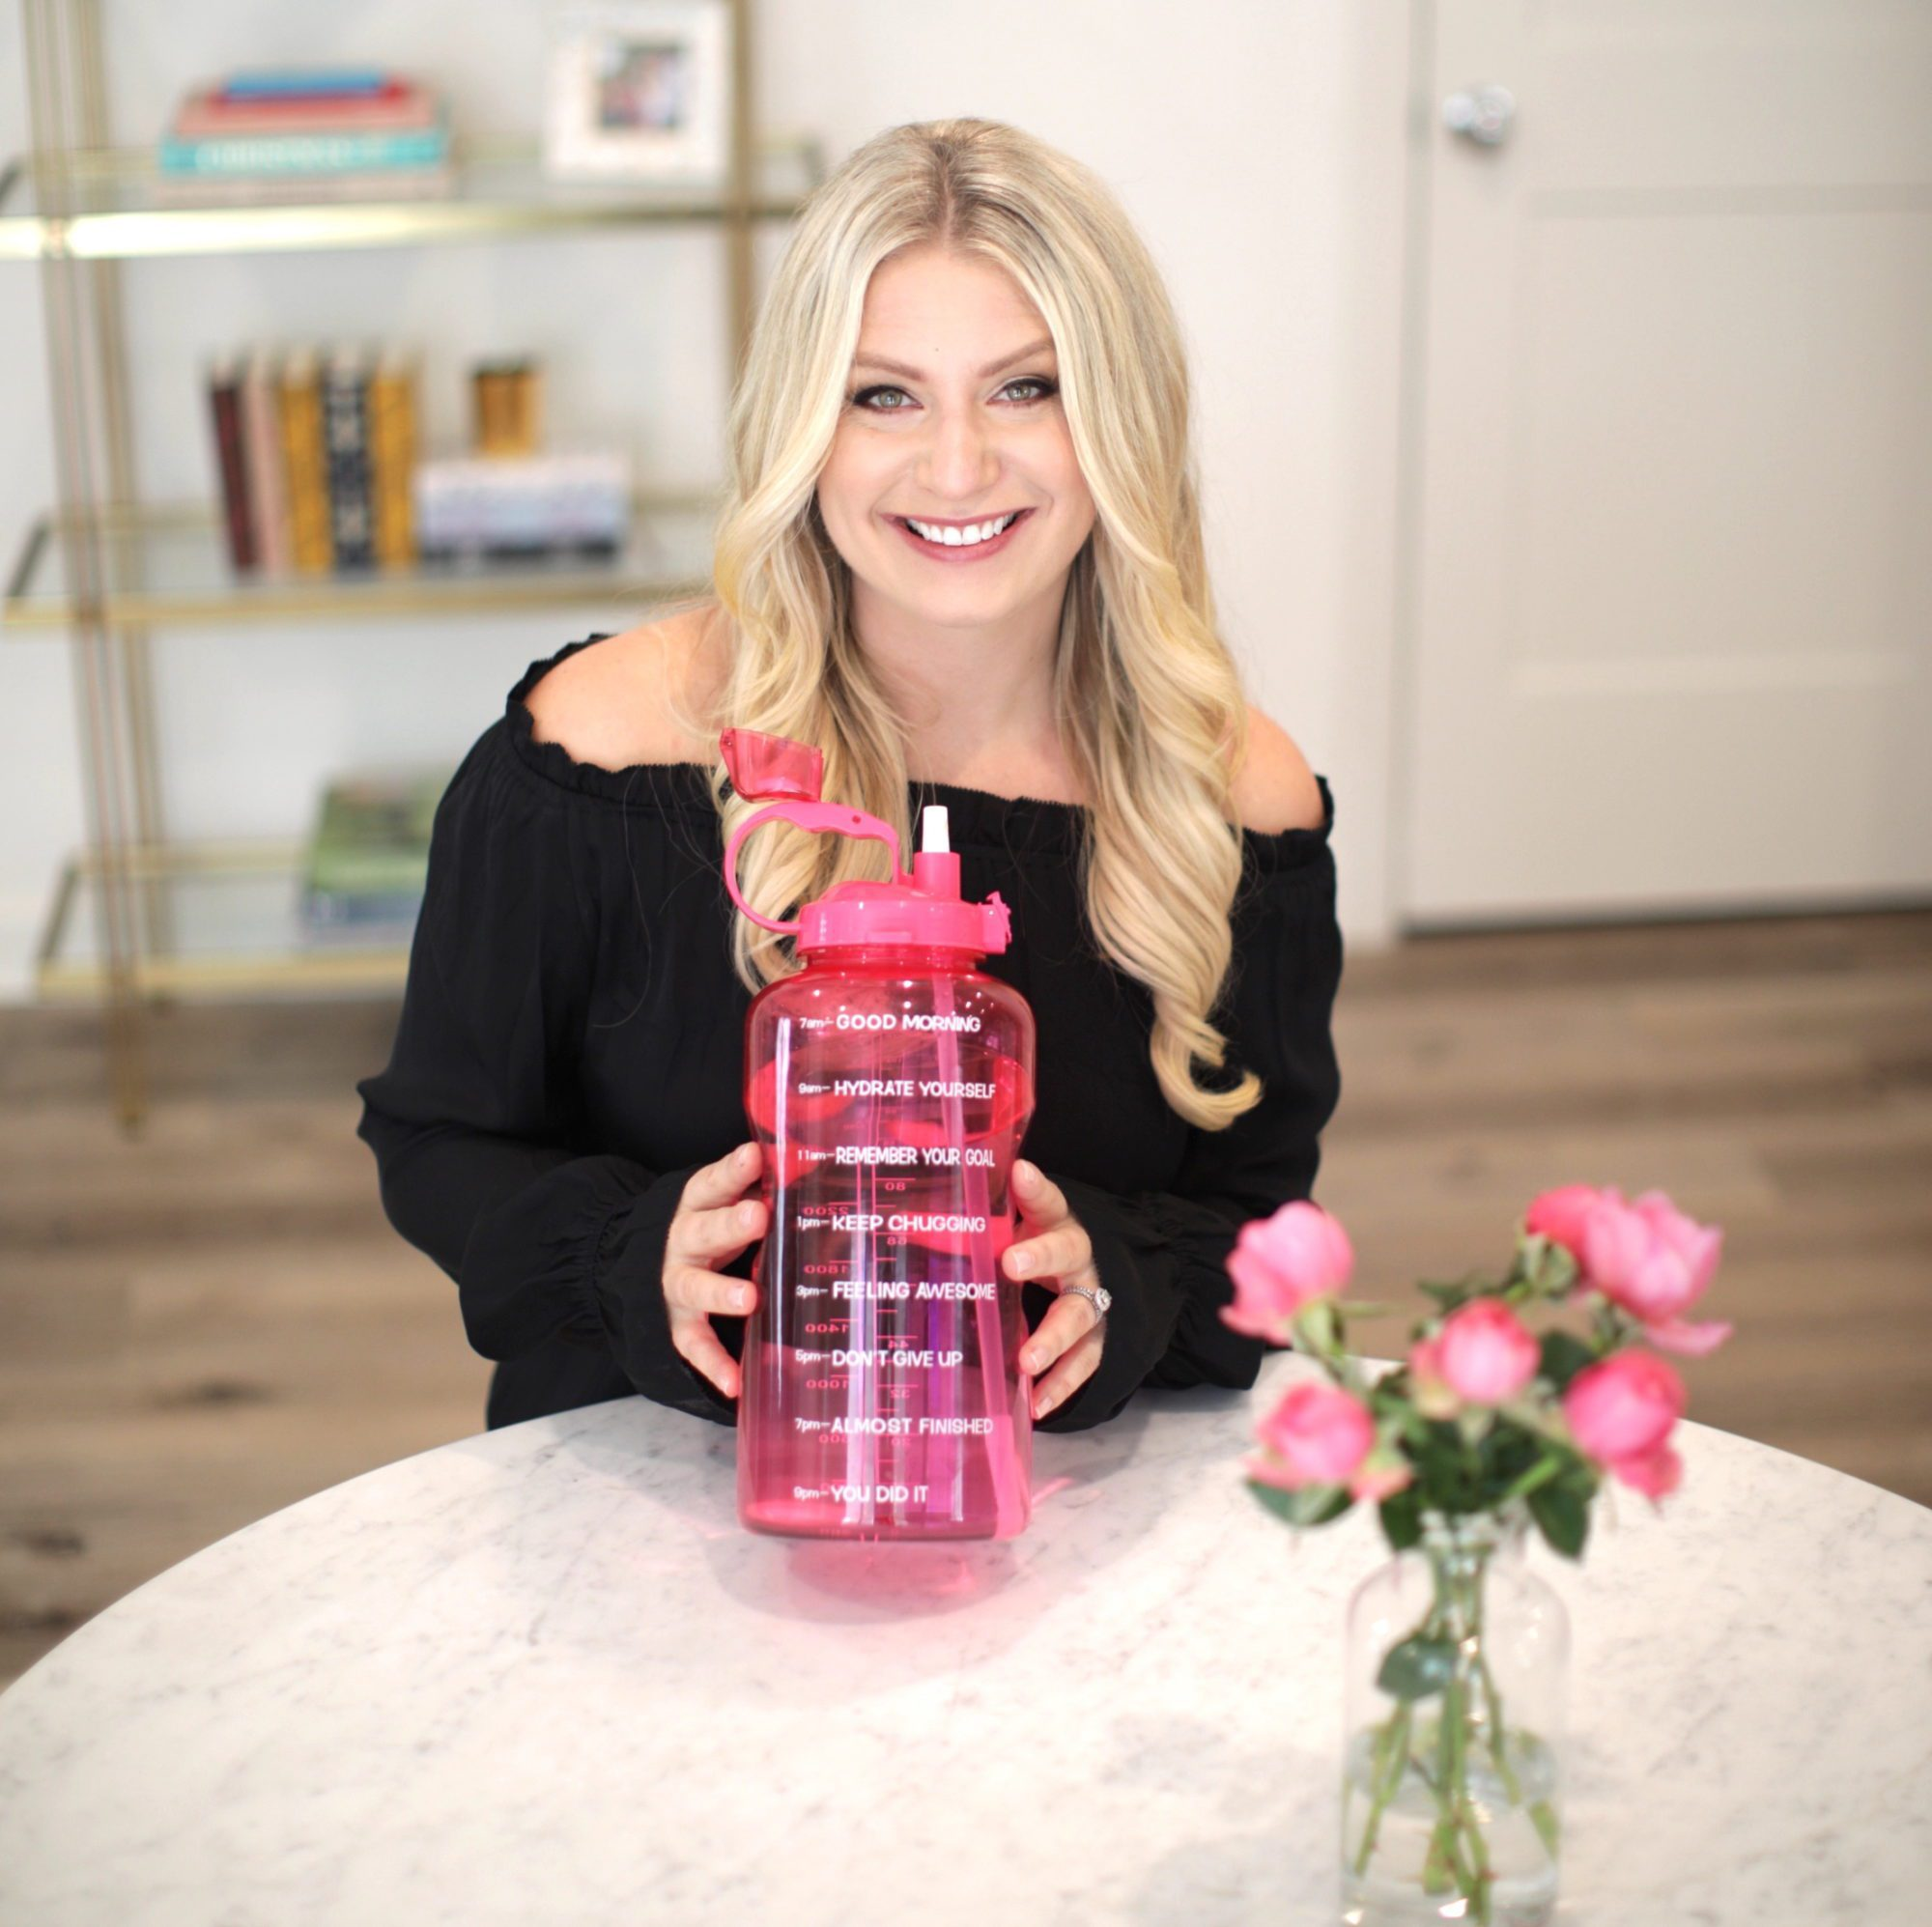 Emily Williams Holding Pink Waterbottle